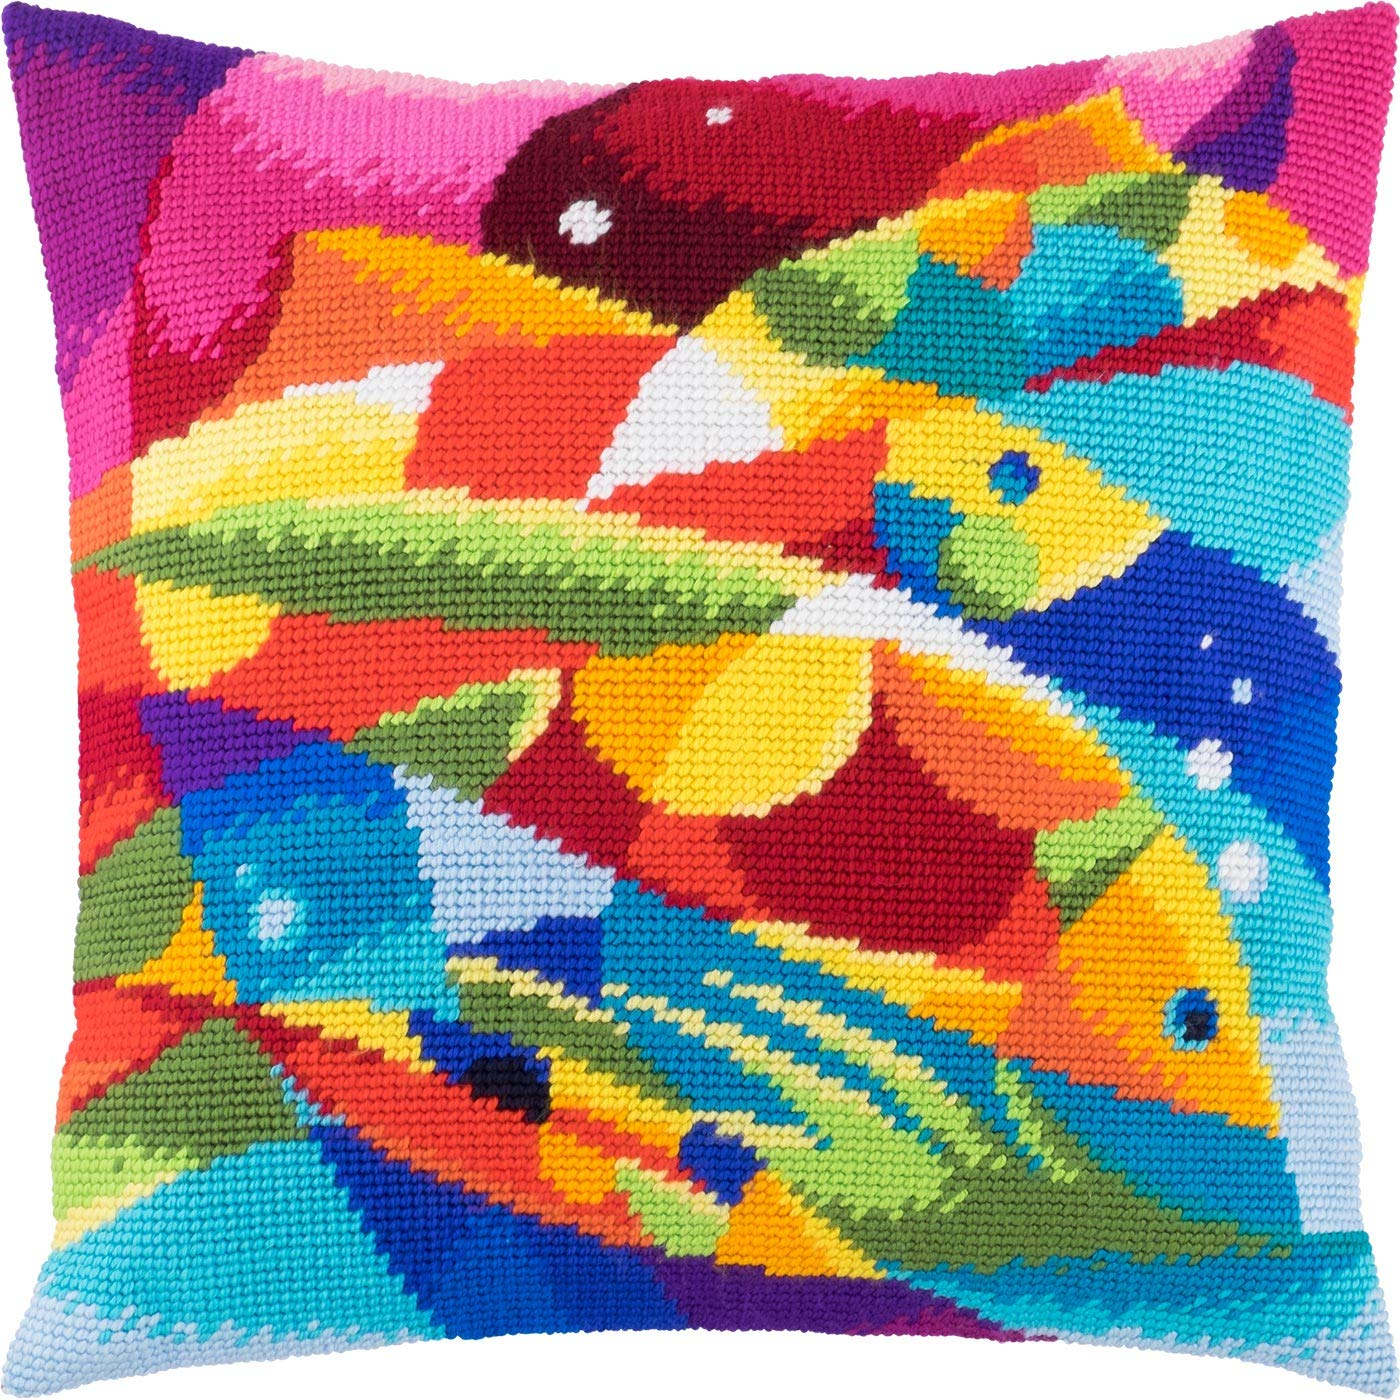 Throw Pillow Case 16/×16 Inches Printed Tapestry Canvas Rainbow Home Decor European Quality Abstract Fish DIY Embroidery Needlepoint Cushion Cover Front Abstract Fish Cross Stitch Kit